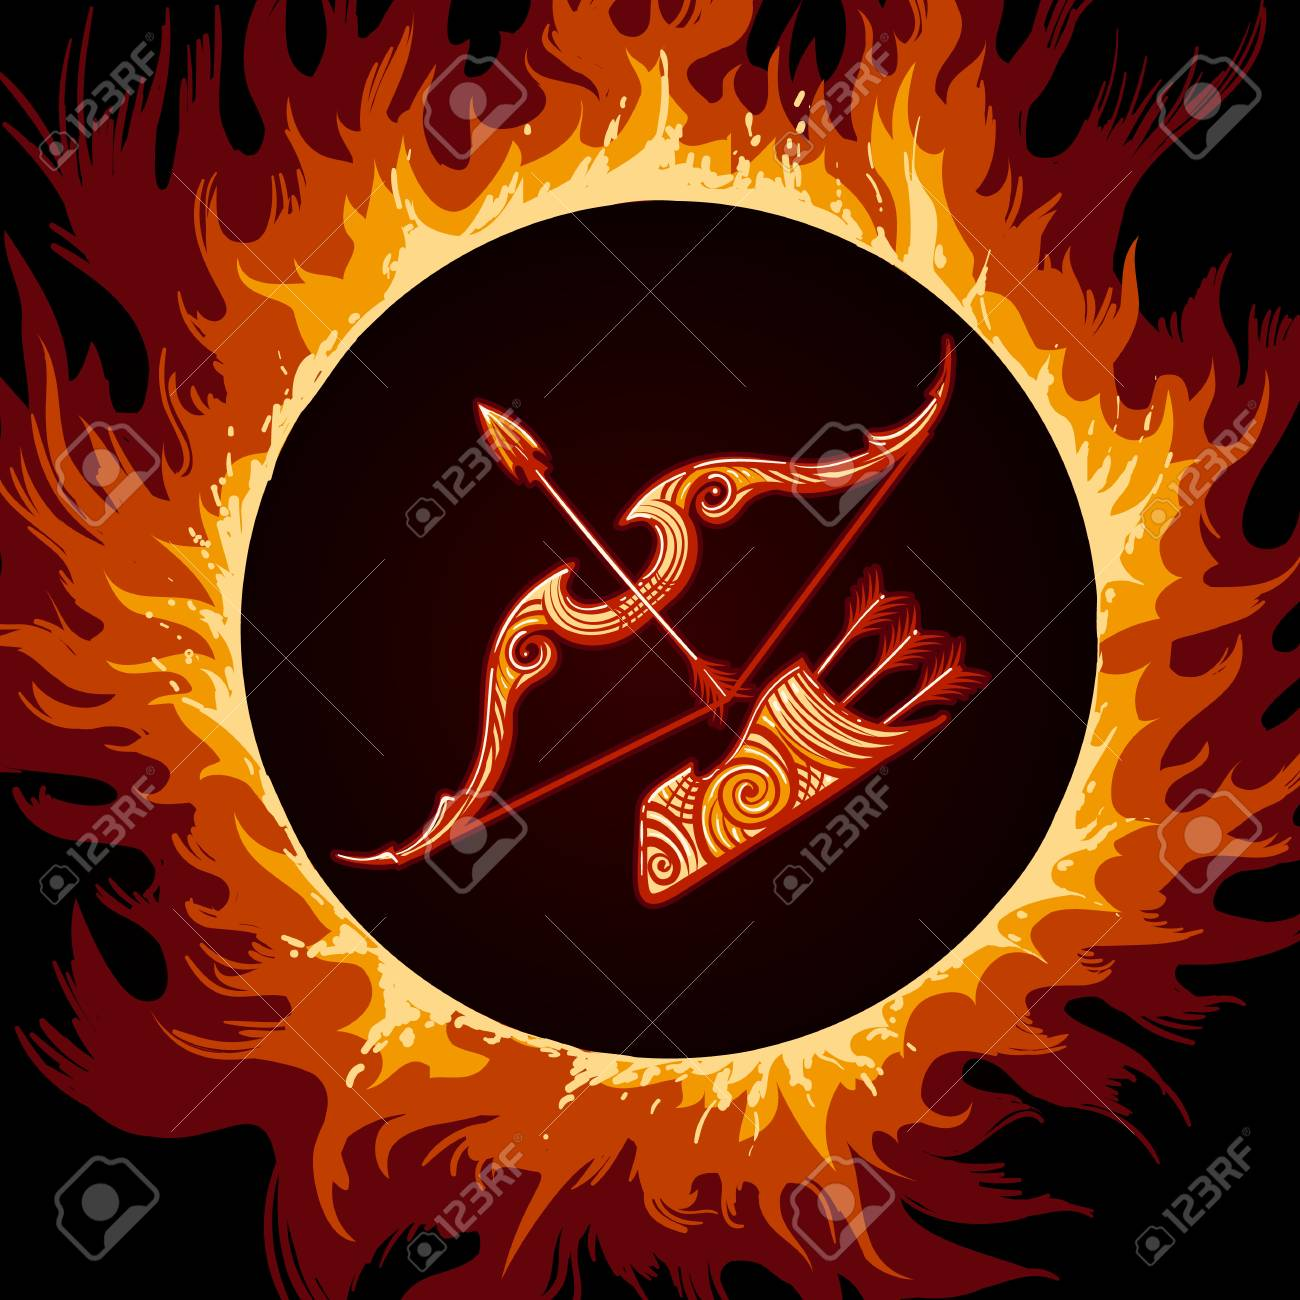 d562d5e3b75ab Bow and arrows in Flame. Zodiac symbol Sagittarius on fire background.  Vector illustration.